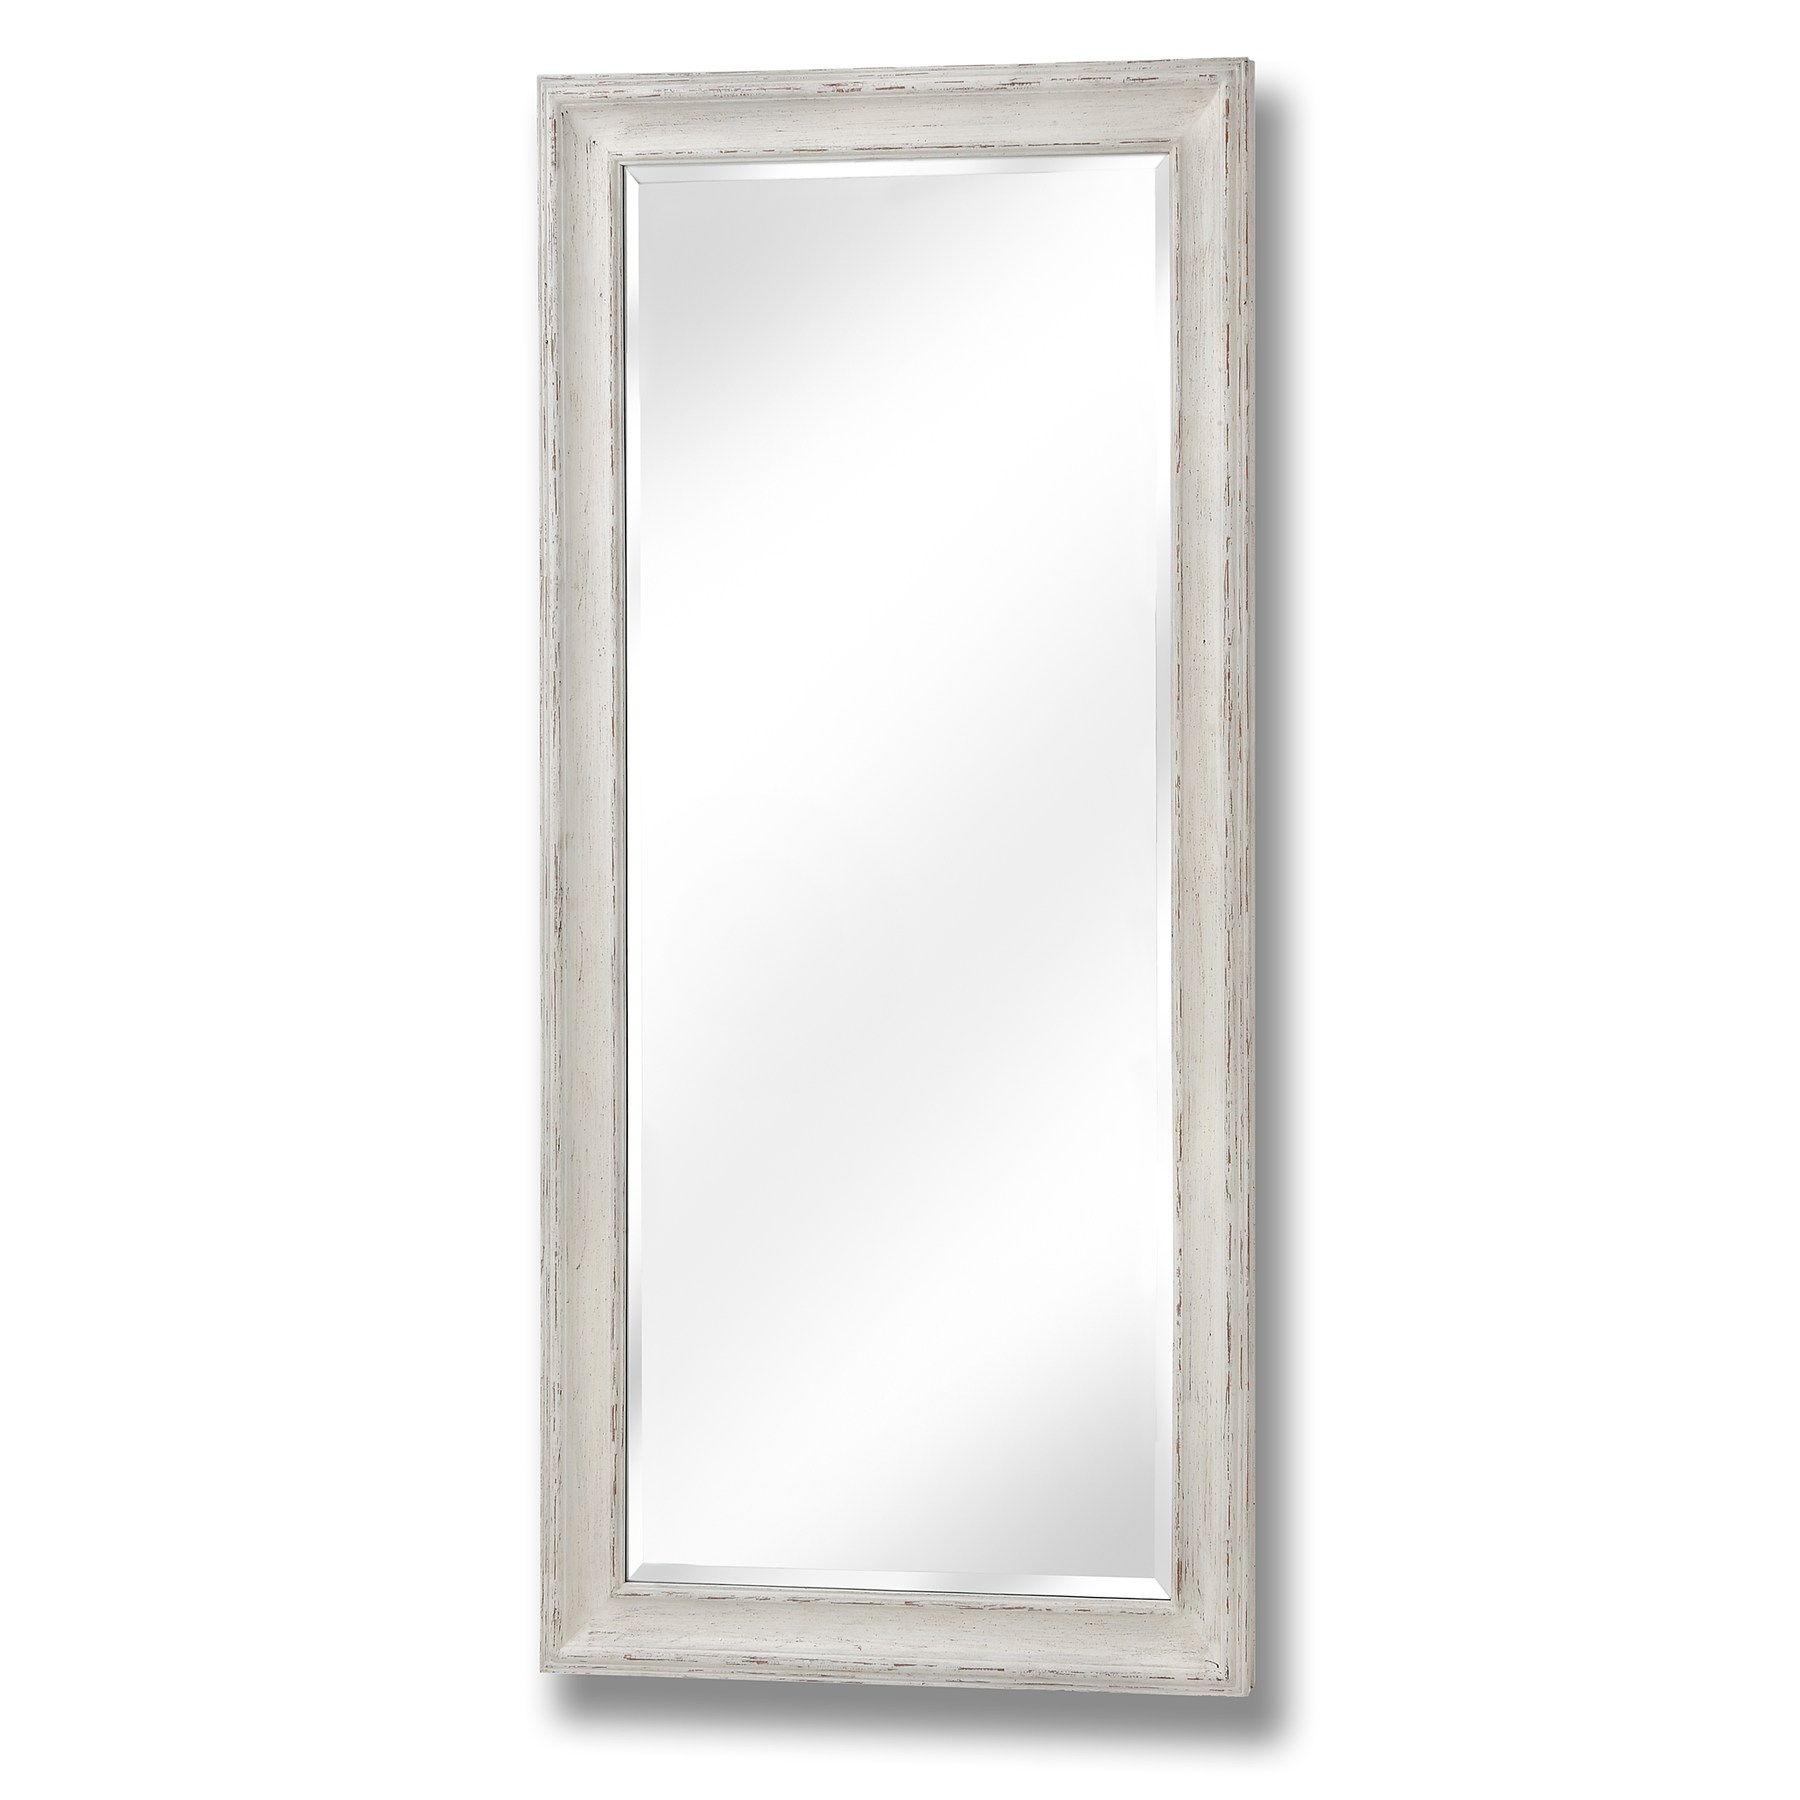 Antique white large frame mirror from hill interiors for Large white mirror